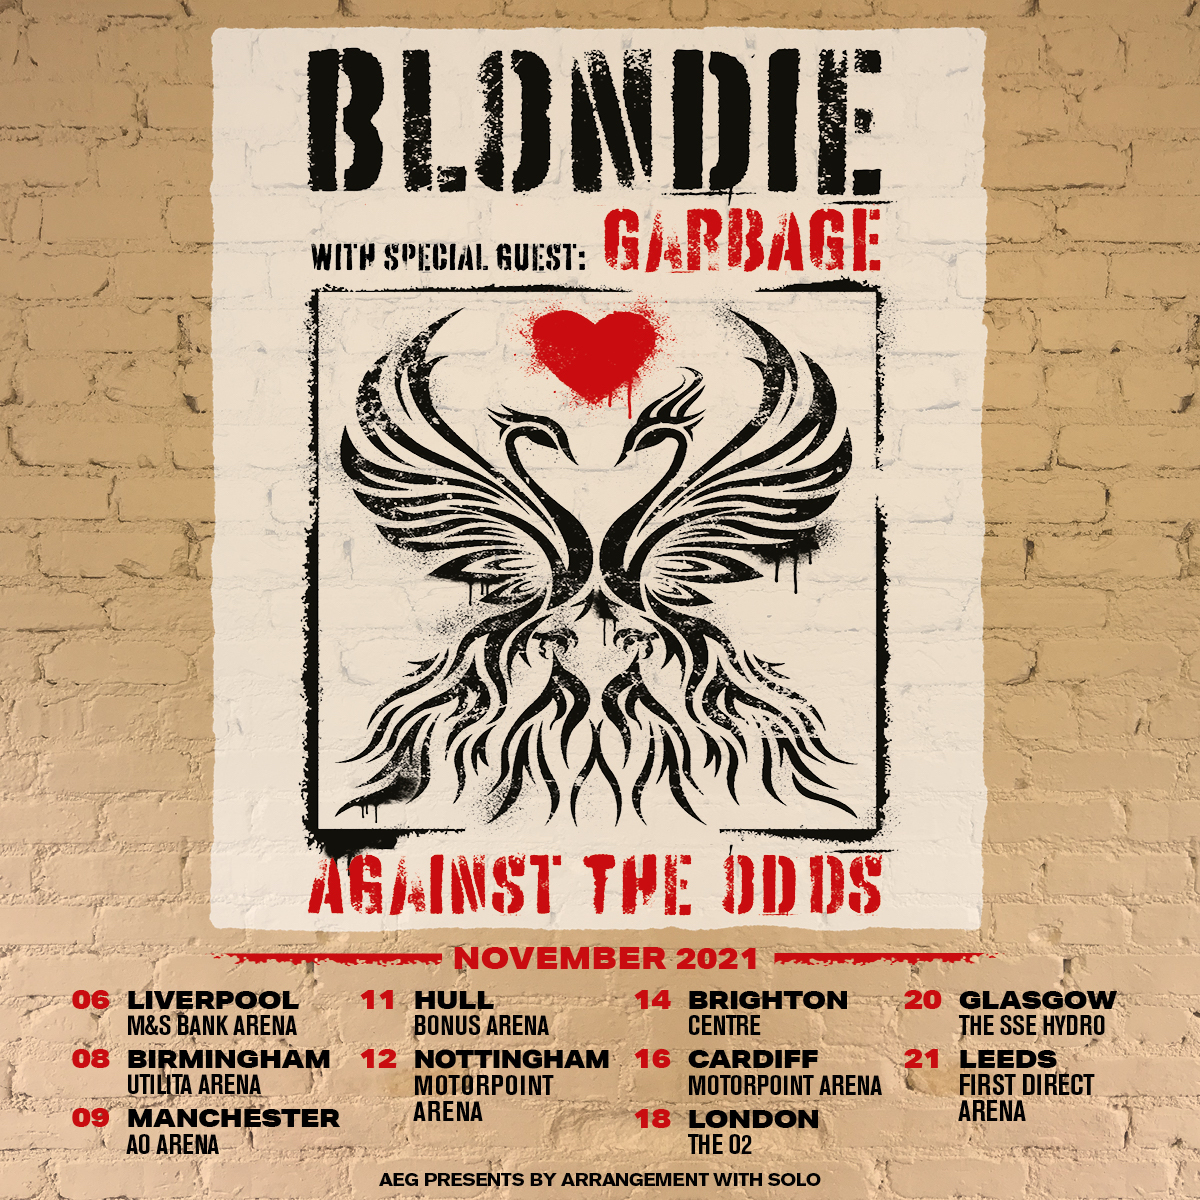 New // @BlondieOfficial have confirmed dates for a November 2021 tour w/ special guests @garbage. Tickets go on general sale 10am Friday 23rd October: https://t.co/wKCabrtPvl https://t.co/rW5wsrP449